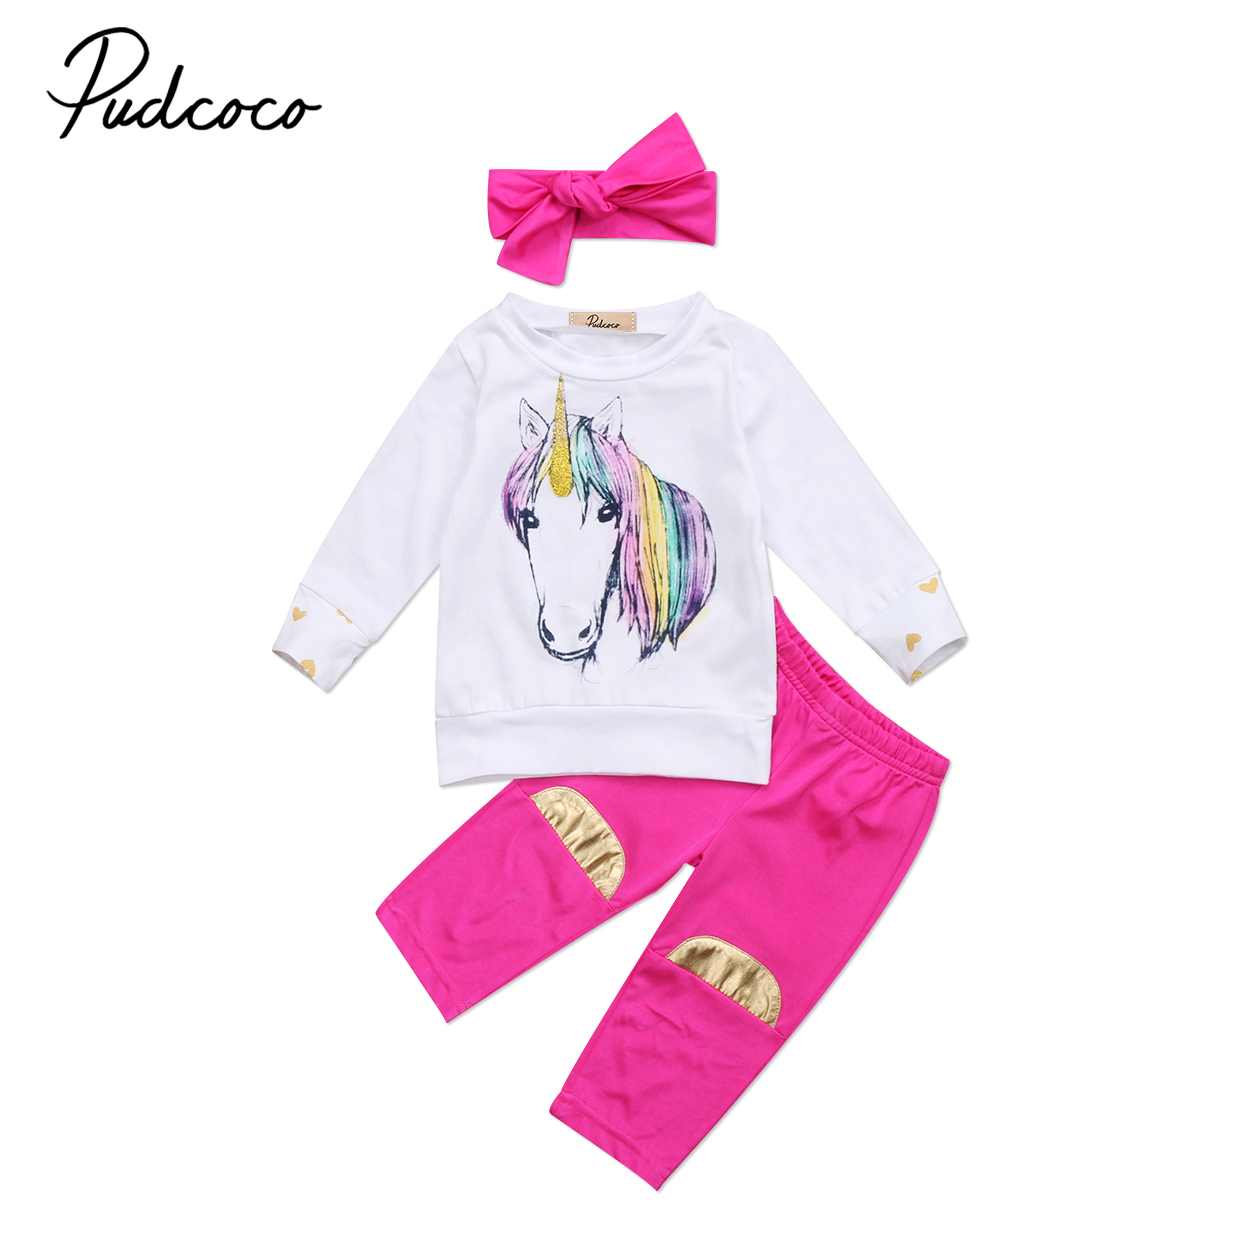 Pudcoco Cartoon Newborn Baby Clothing Sets Girls Kids Outfit Clothes Tops T-shirt Pants Headband Fashion Autumn Cute Baby Set jtc ключ специальный для коробки передач 5hp24 5hp30 jtc 1436